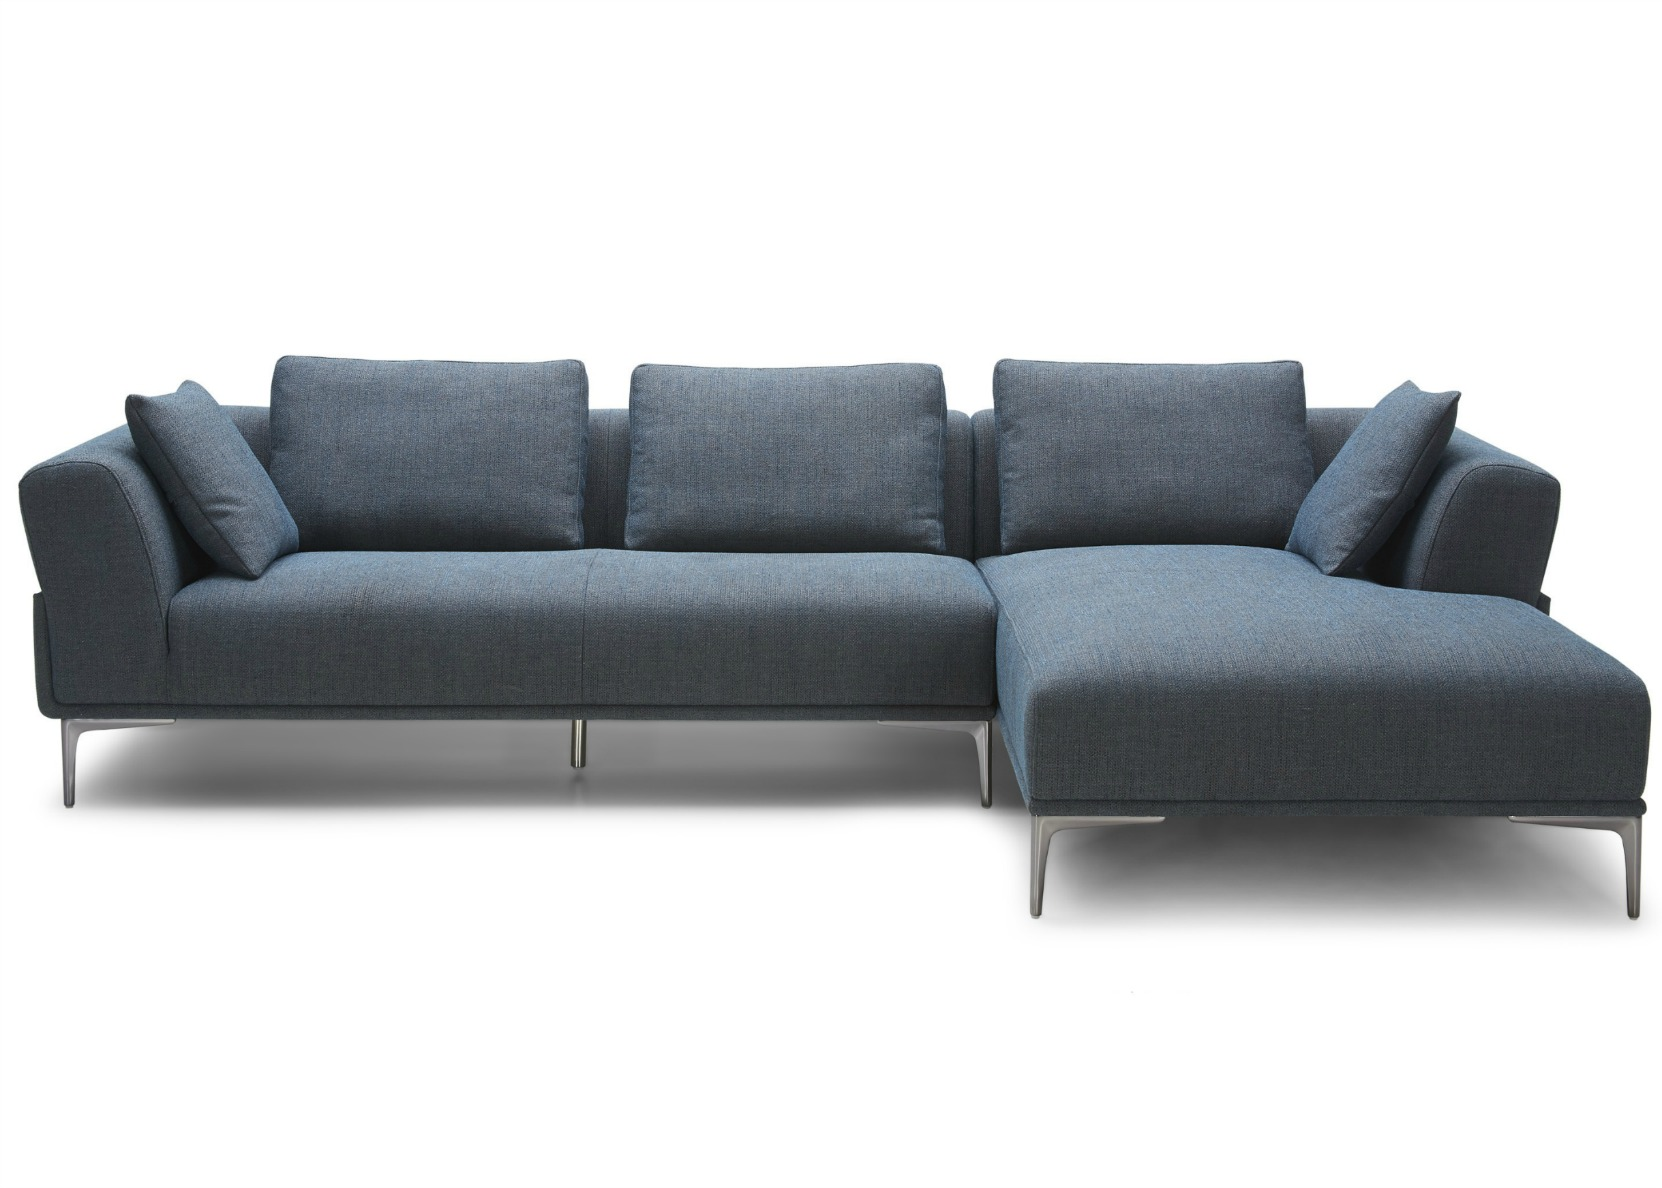 Contemporary Lounge Sofa In Blue - Not Just Brown